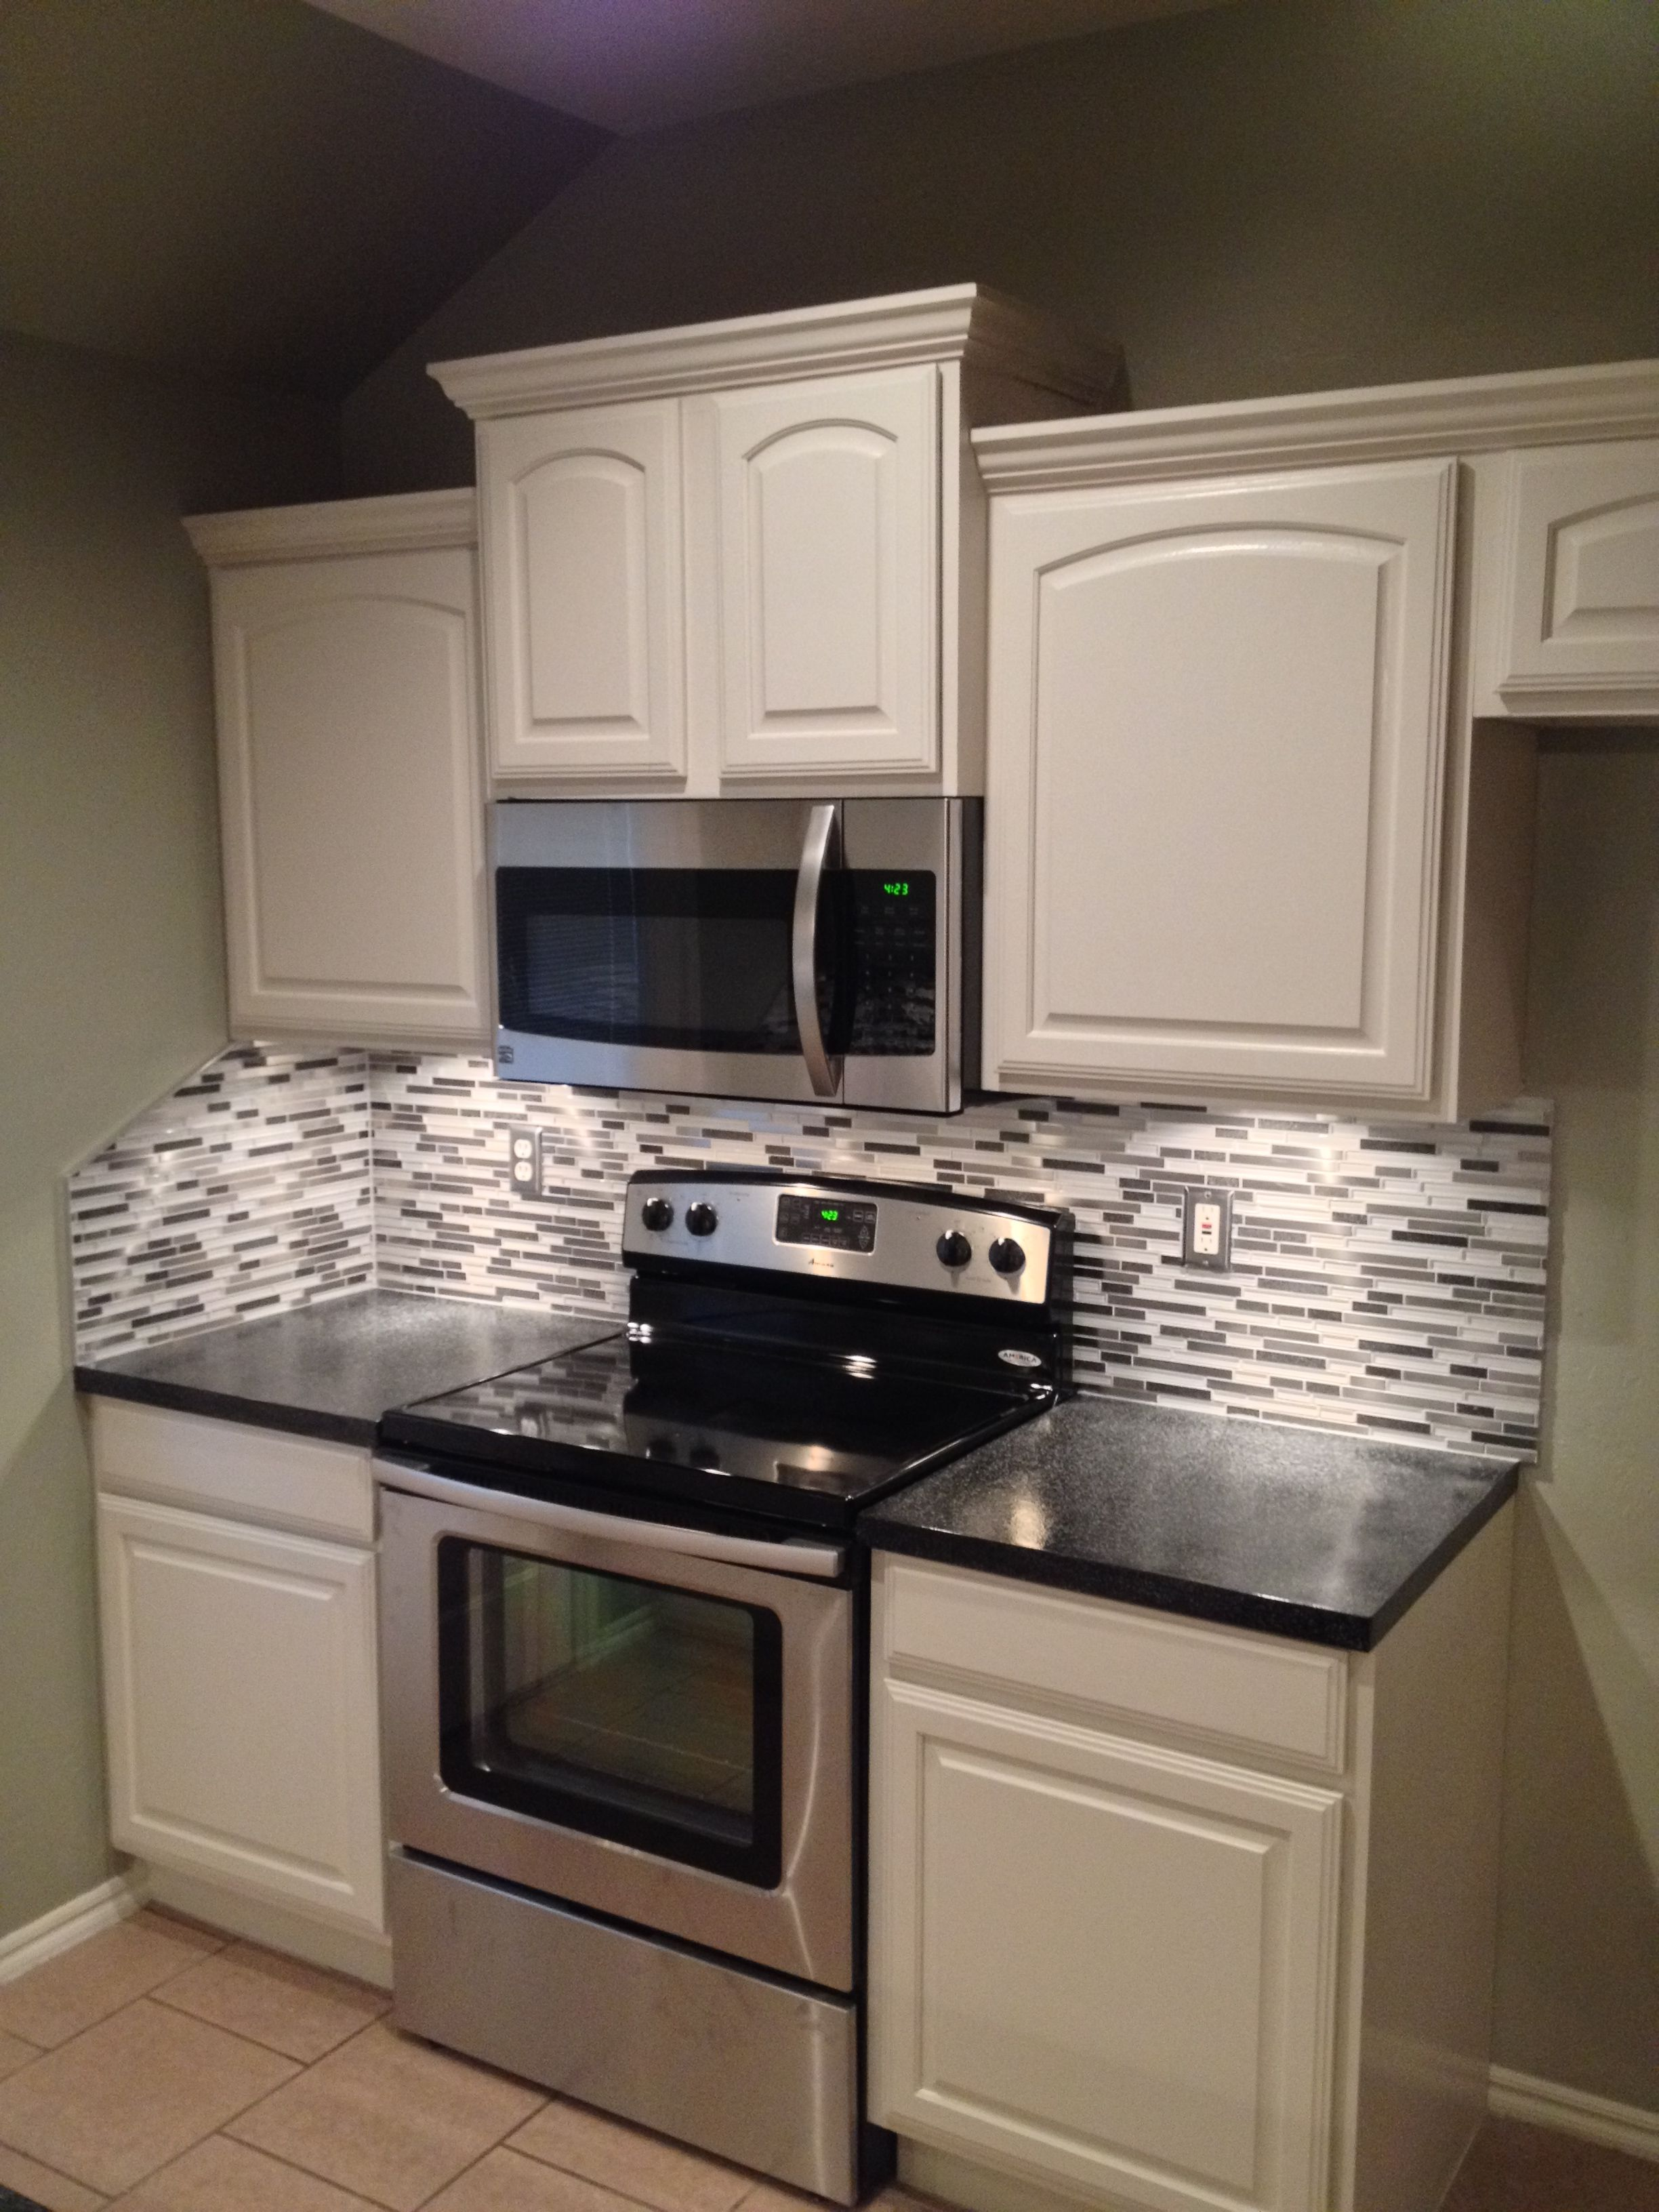 Countertops Okc Oklahoma City And Edmond Showers And Backsplash Painted